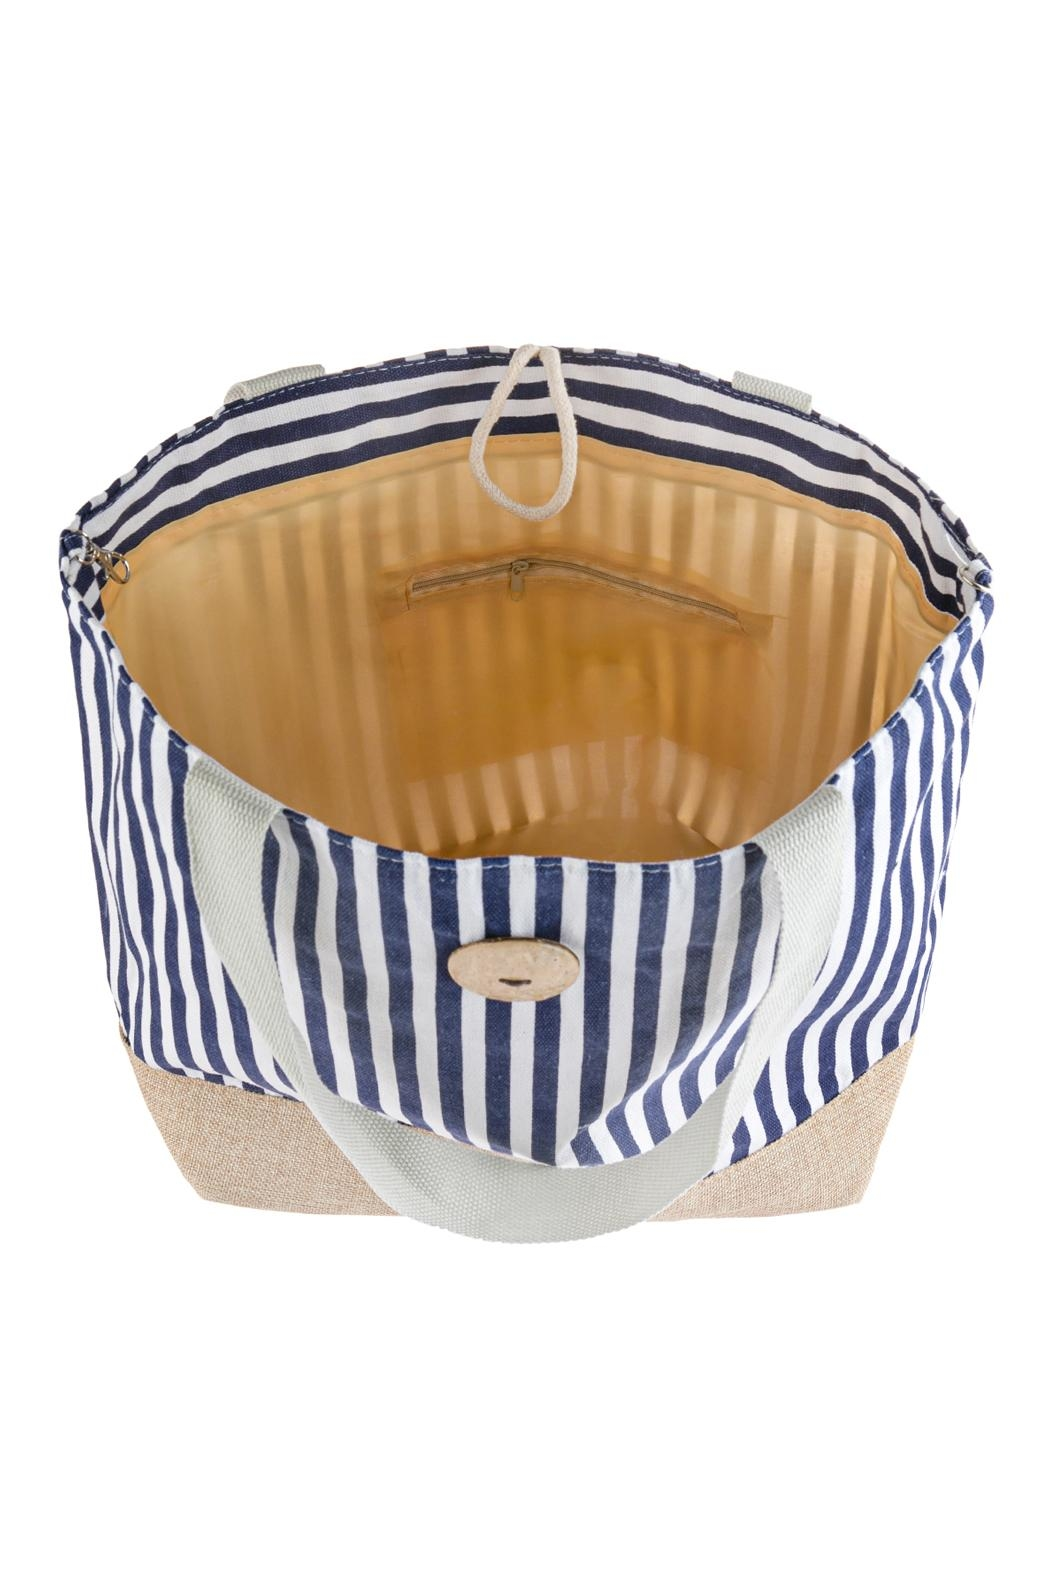 Riah Fashion Striped Tote Bag With Coconut Shell Button Tie Lock - Side Cropped Image